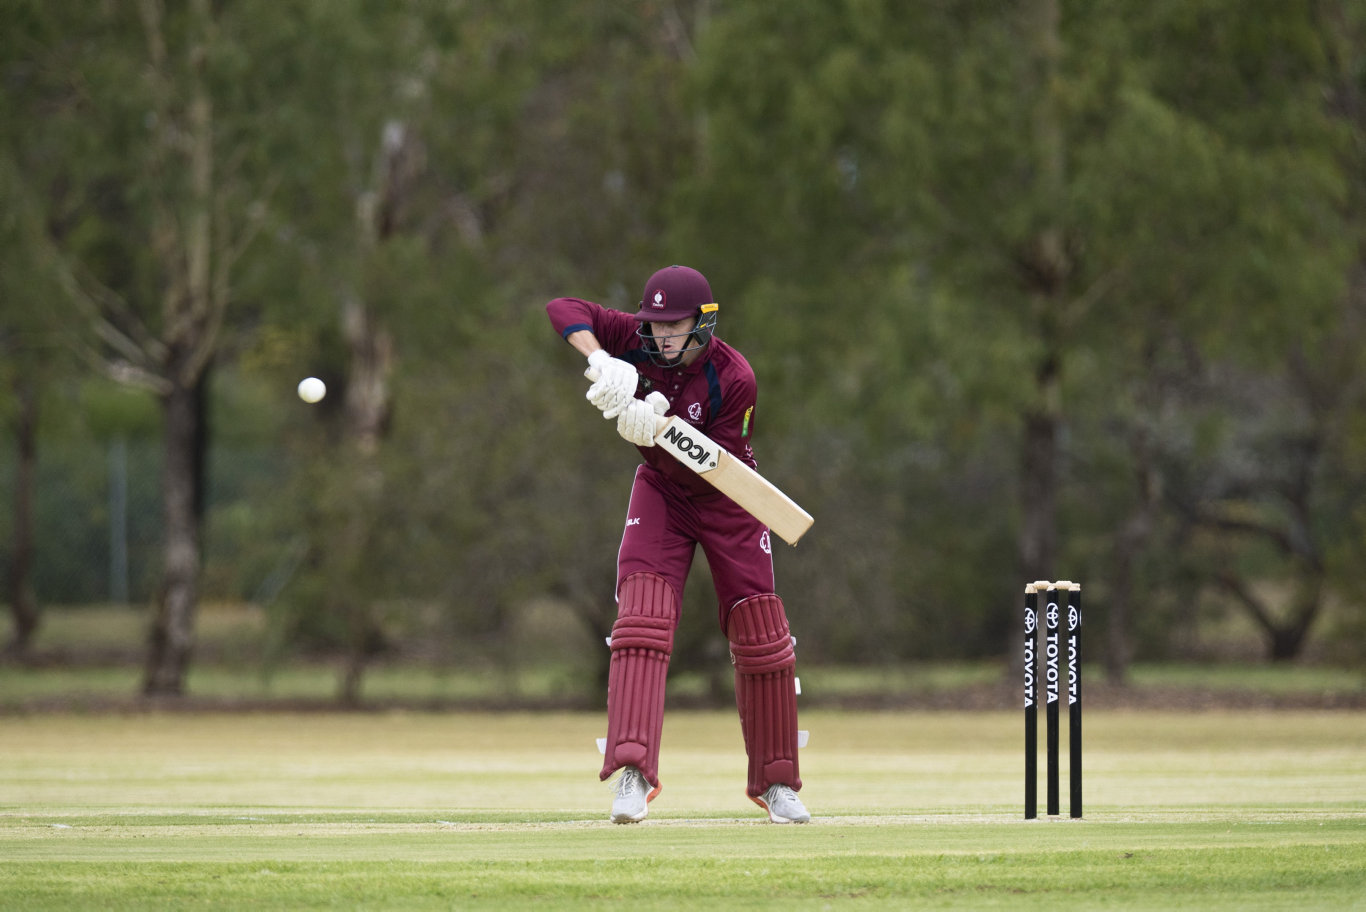 Sam Lowry bats for Queensland against Australian Capital Territory in Australian Country Cricket Championships round six at Middle Ridge Park, Monday, January 6, 2020. Picture: Kevin Farmer